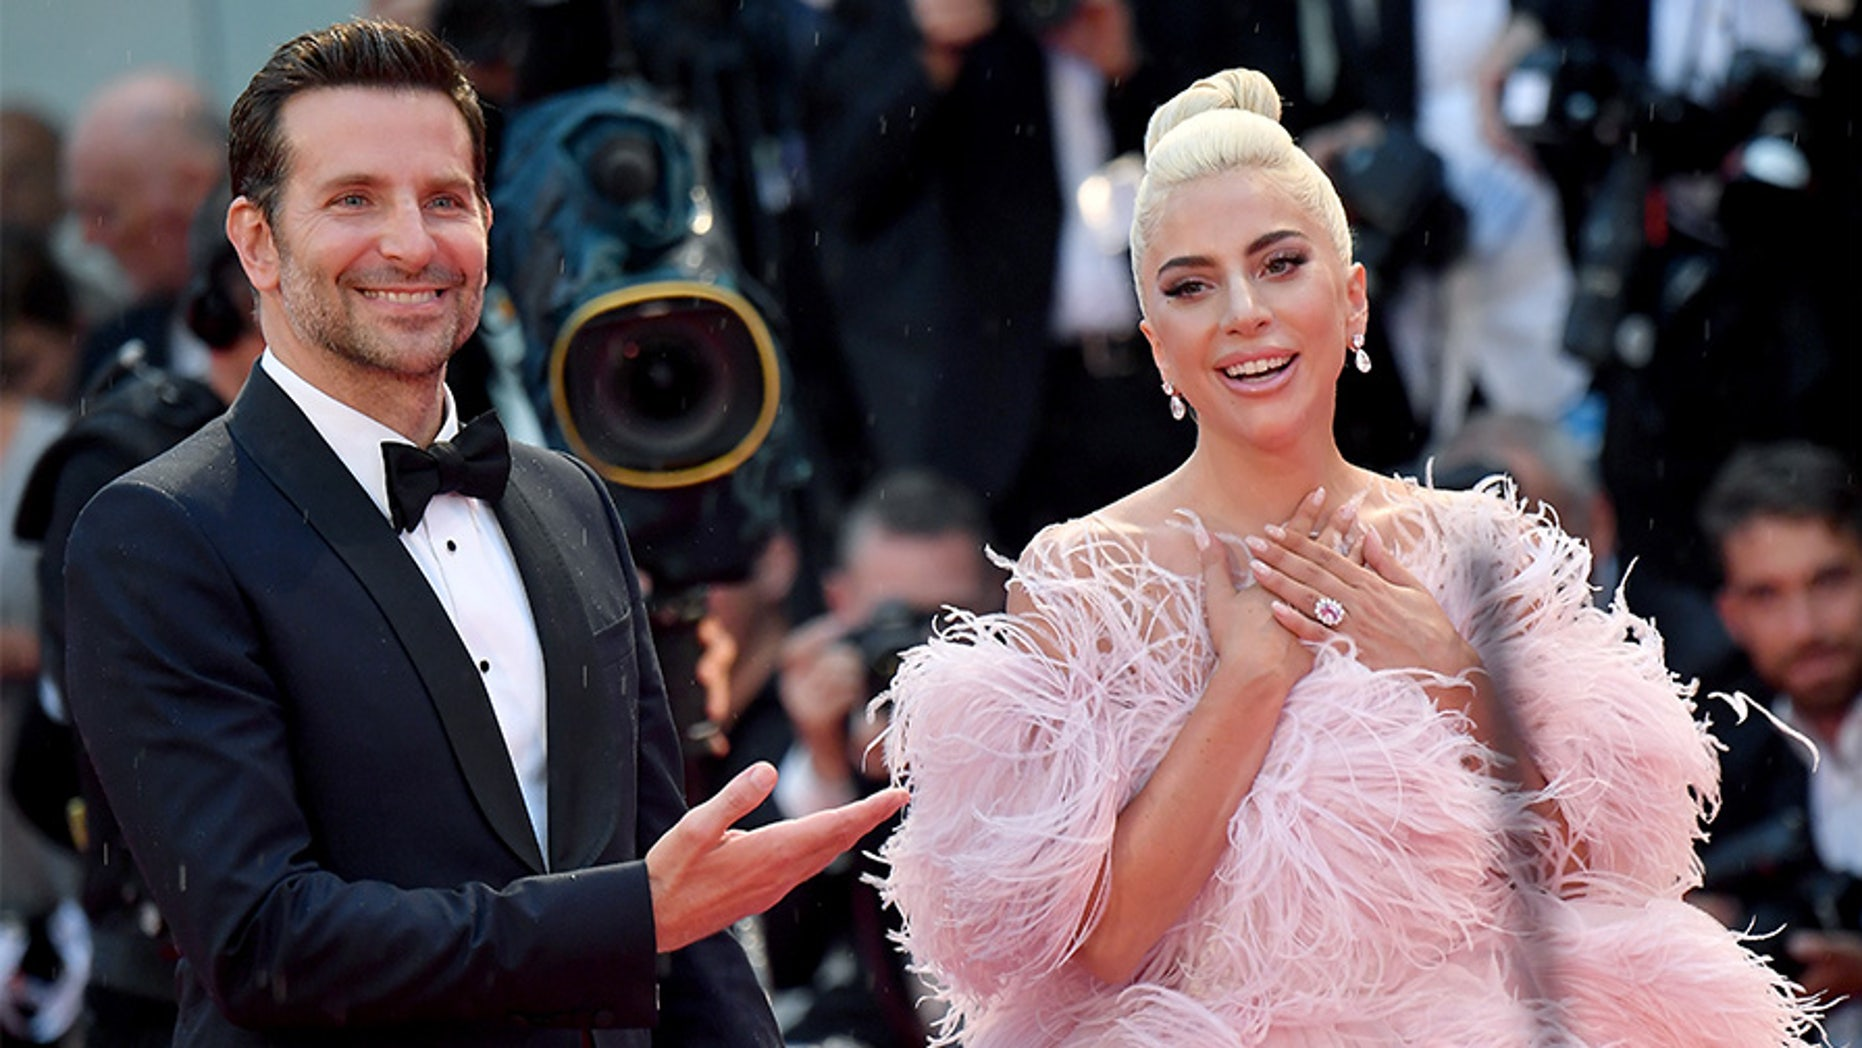 Αποτέλεσμα εικόνας για a star is born bradley cooper and lady gaga